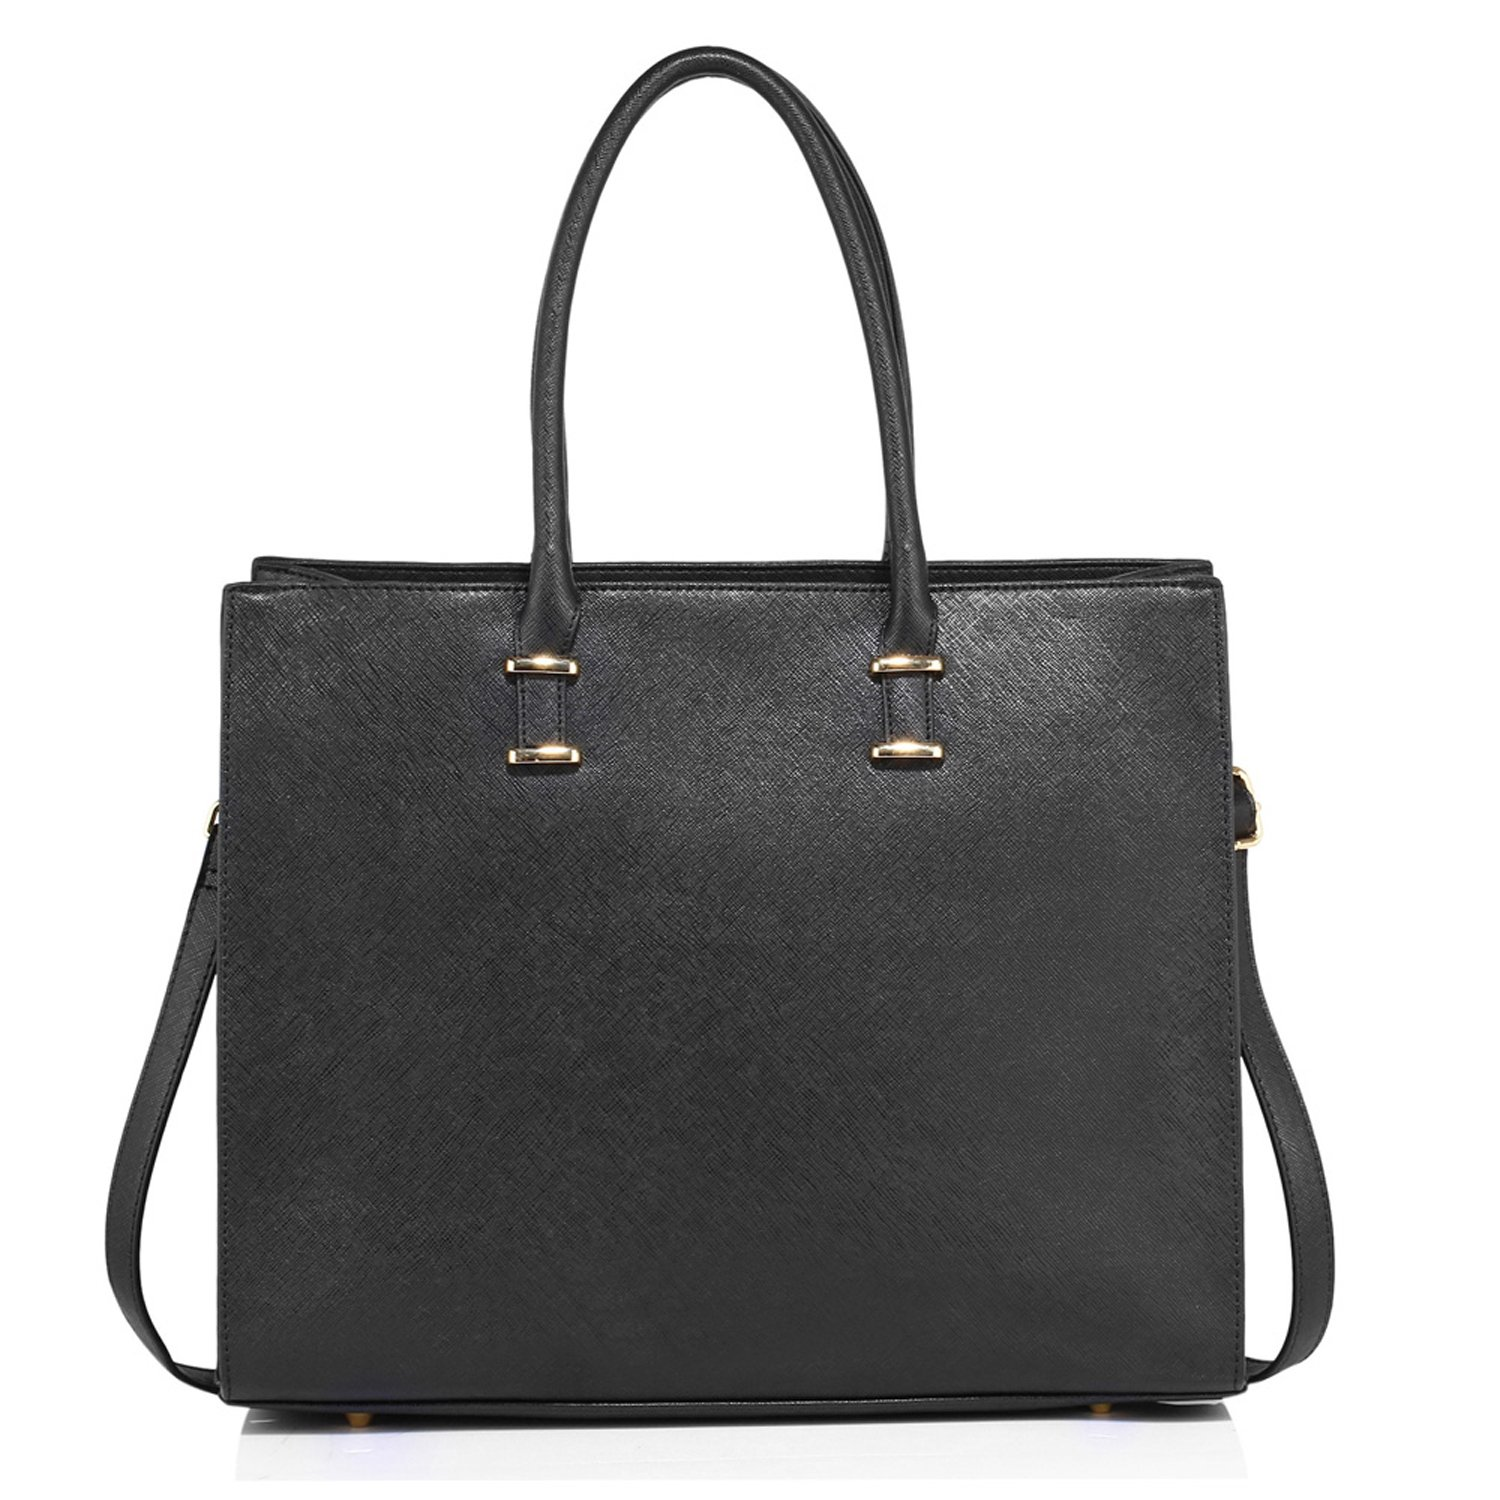 44369e97a3c Xardi London Large Women Designer Handbag Faux Patent Leather Ladies  Shoulder Tote Laptop Bag